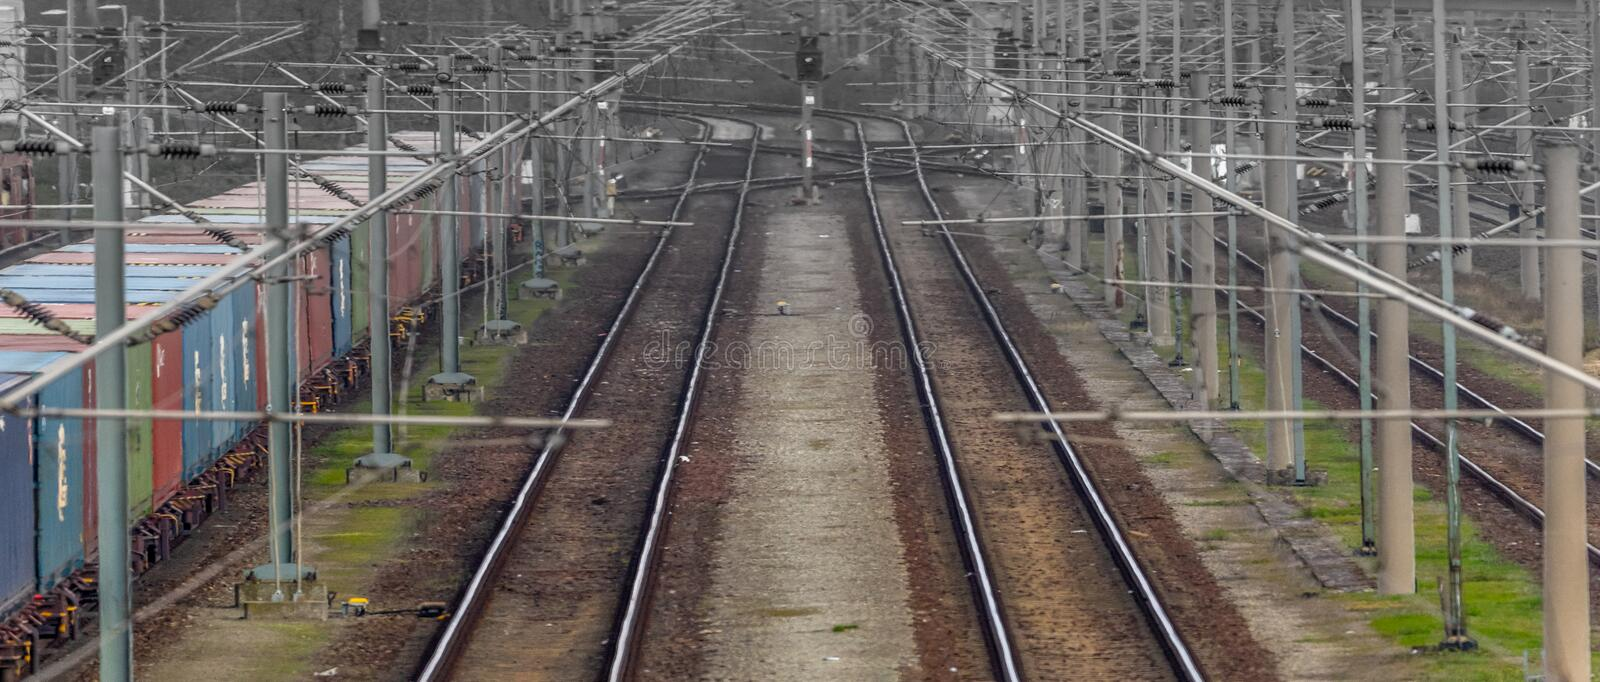 View from above on two railway tracks which vanish in the distance. Abstract royalty free stock photo